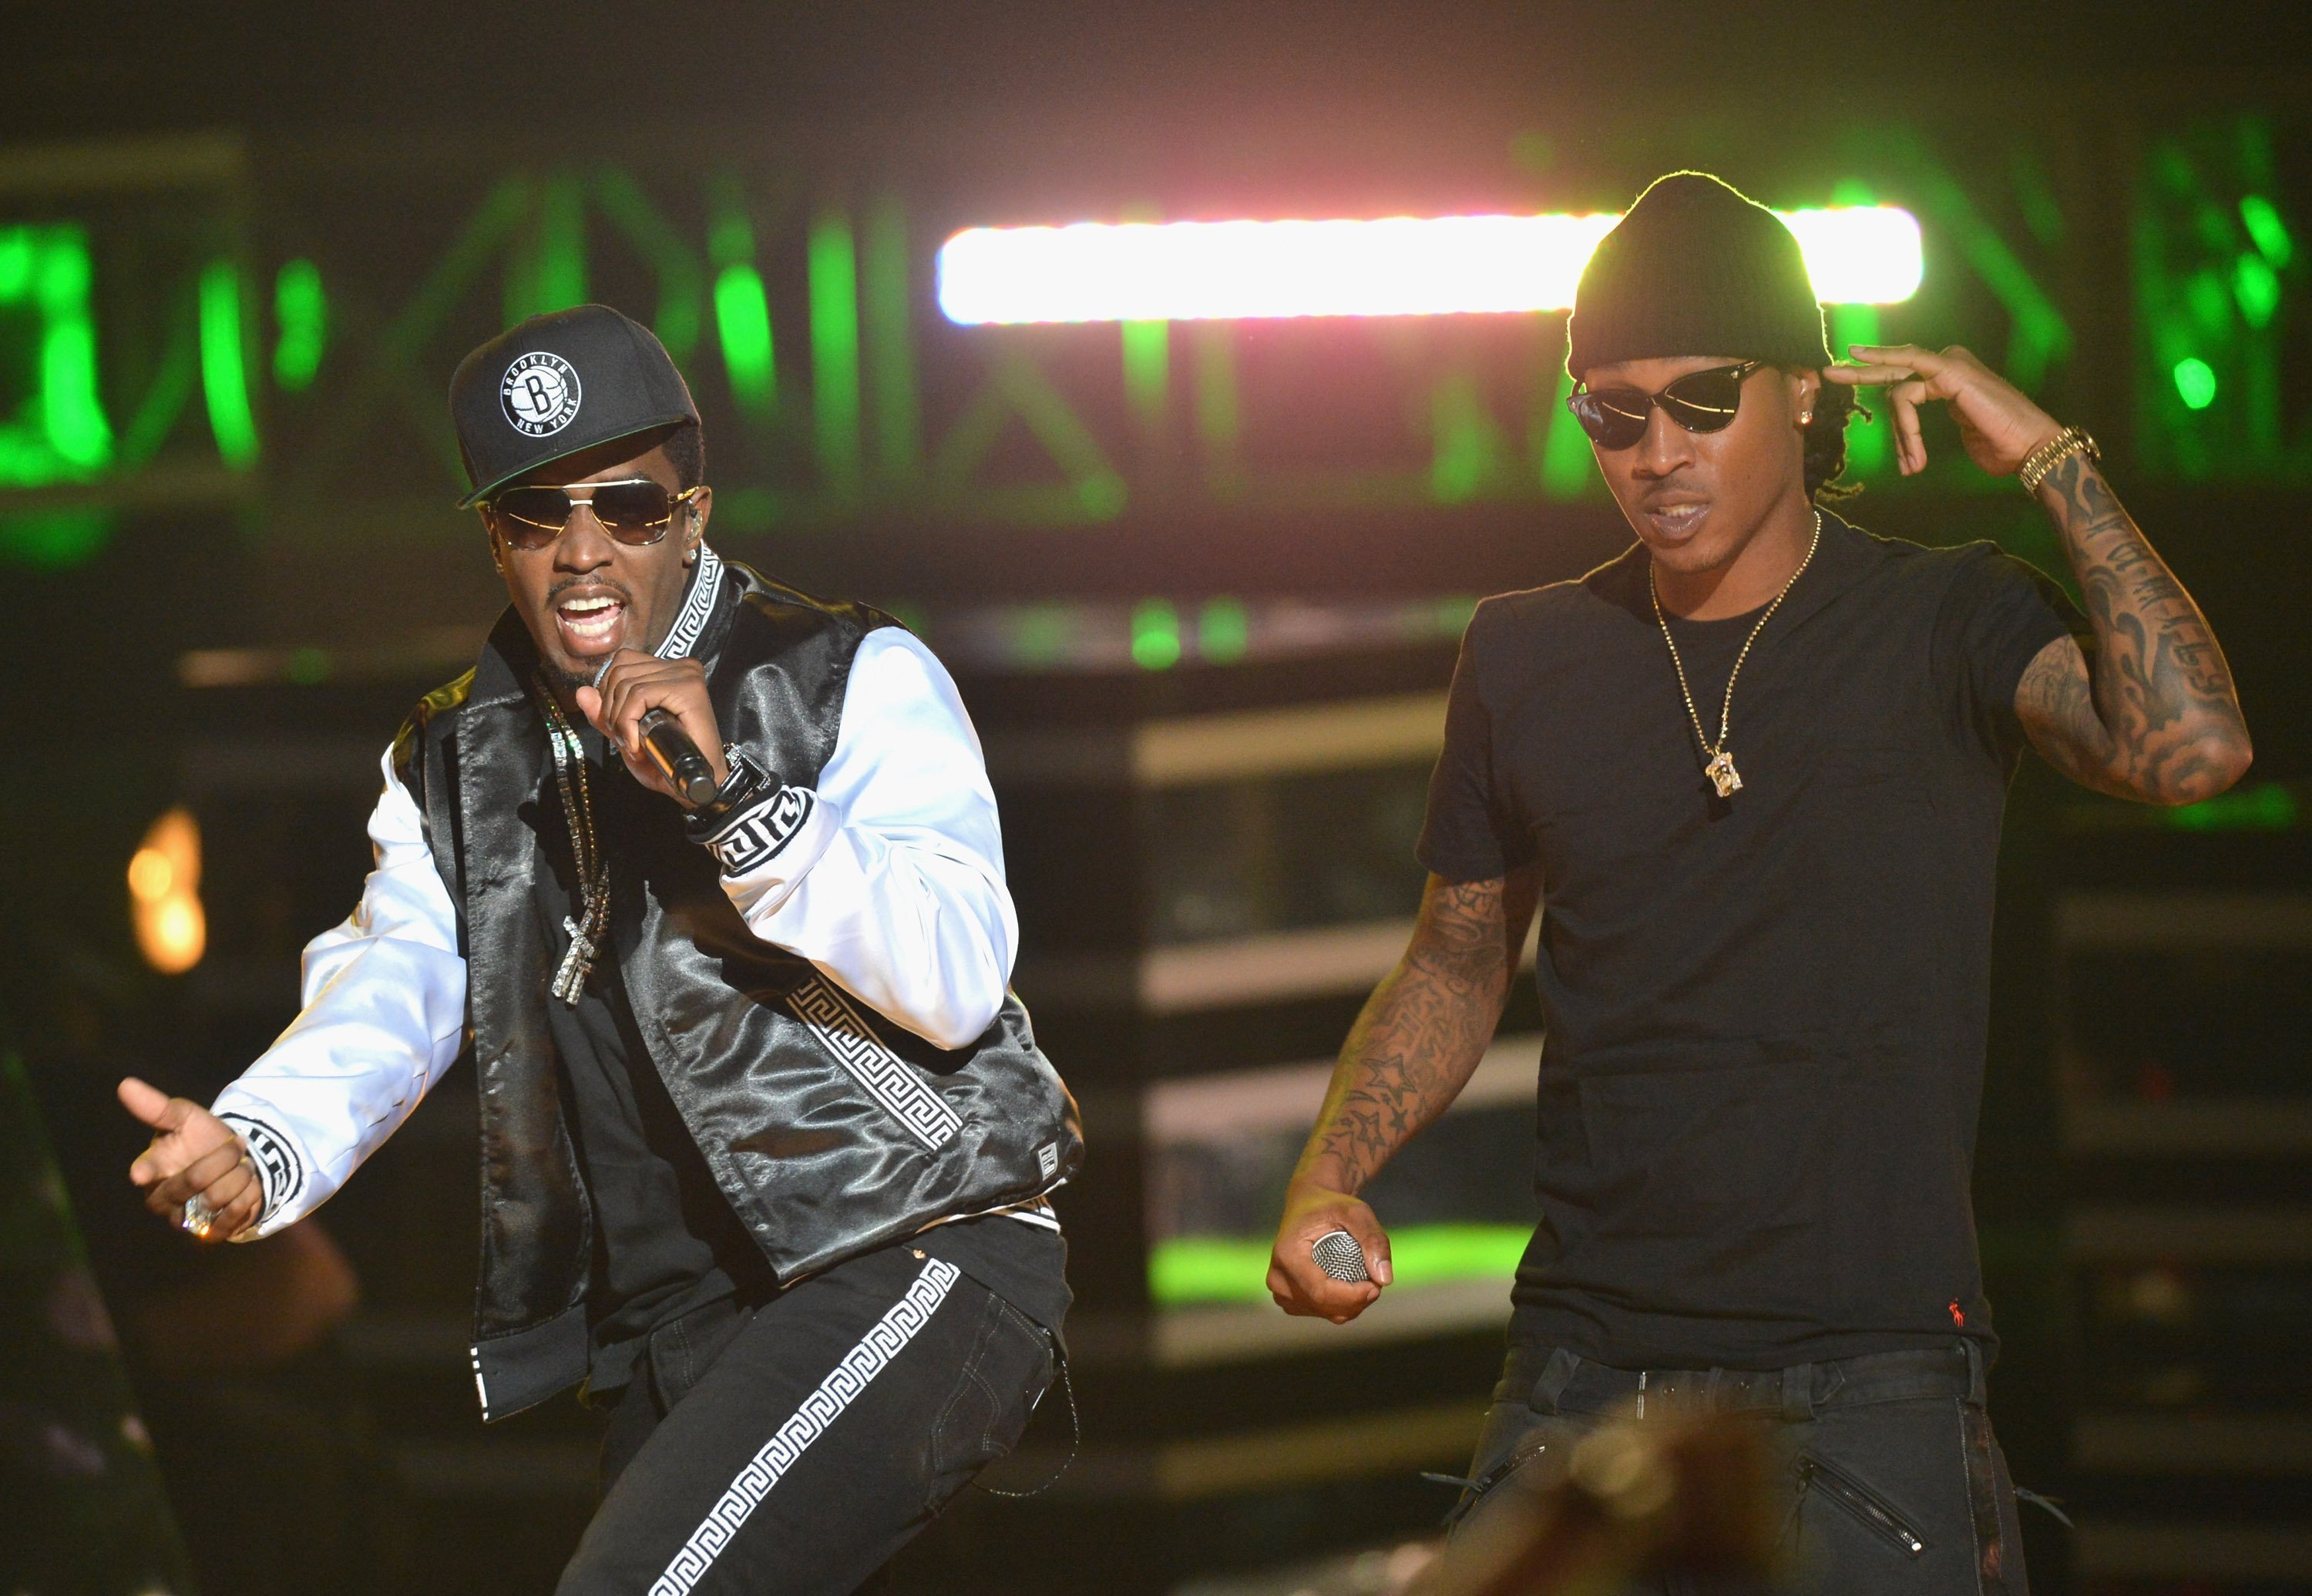 ATLANTA, GA - SEPTEMBER 29: Sean Combs, 'P. Diddy,' (L) and Future perform onstage at the 2012 BET Hip Hop Awards at Boisfeuillet Jones Atlanta Civic Center| Photos: Getty Images